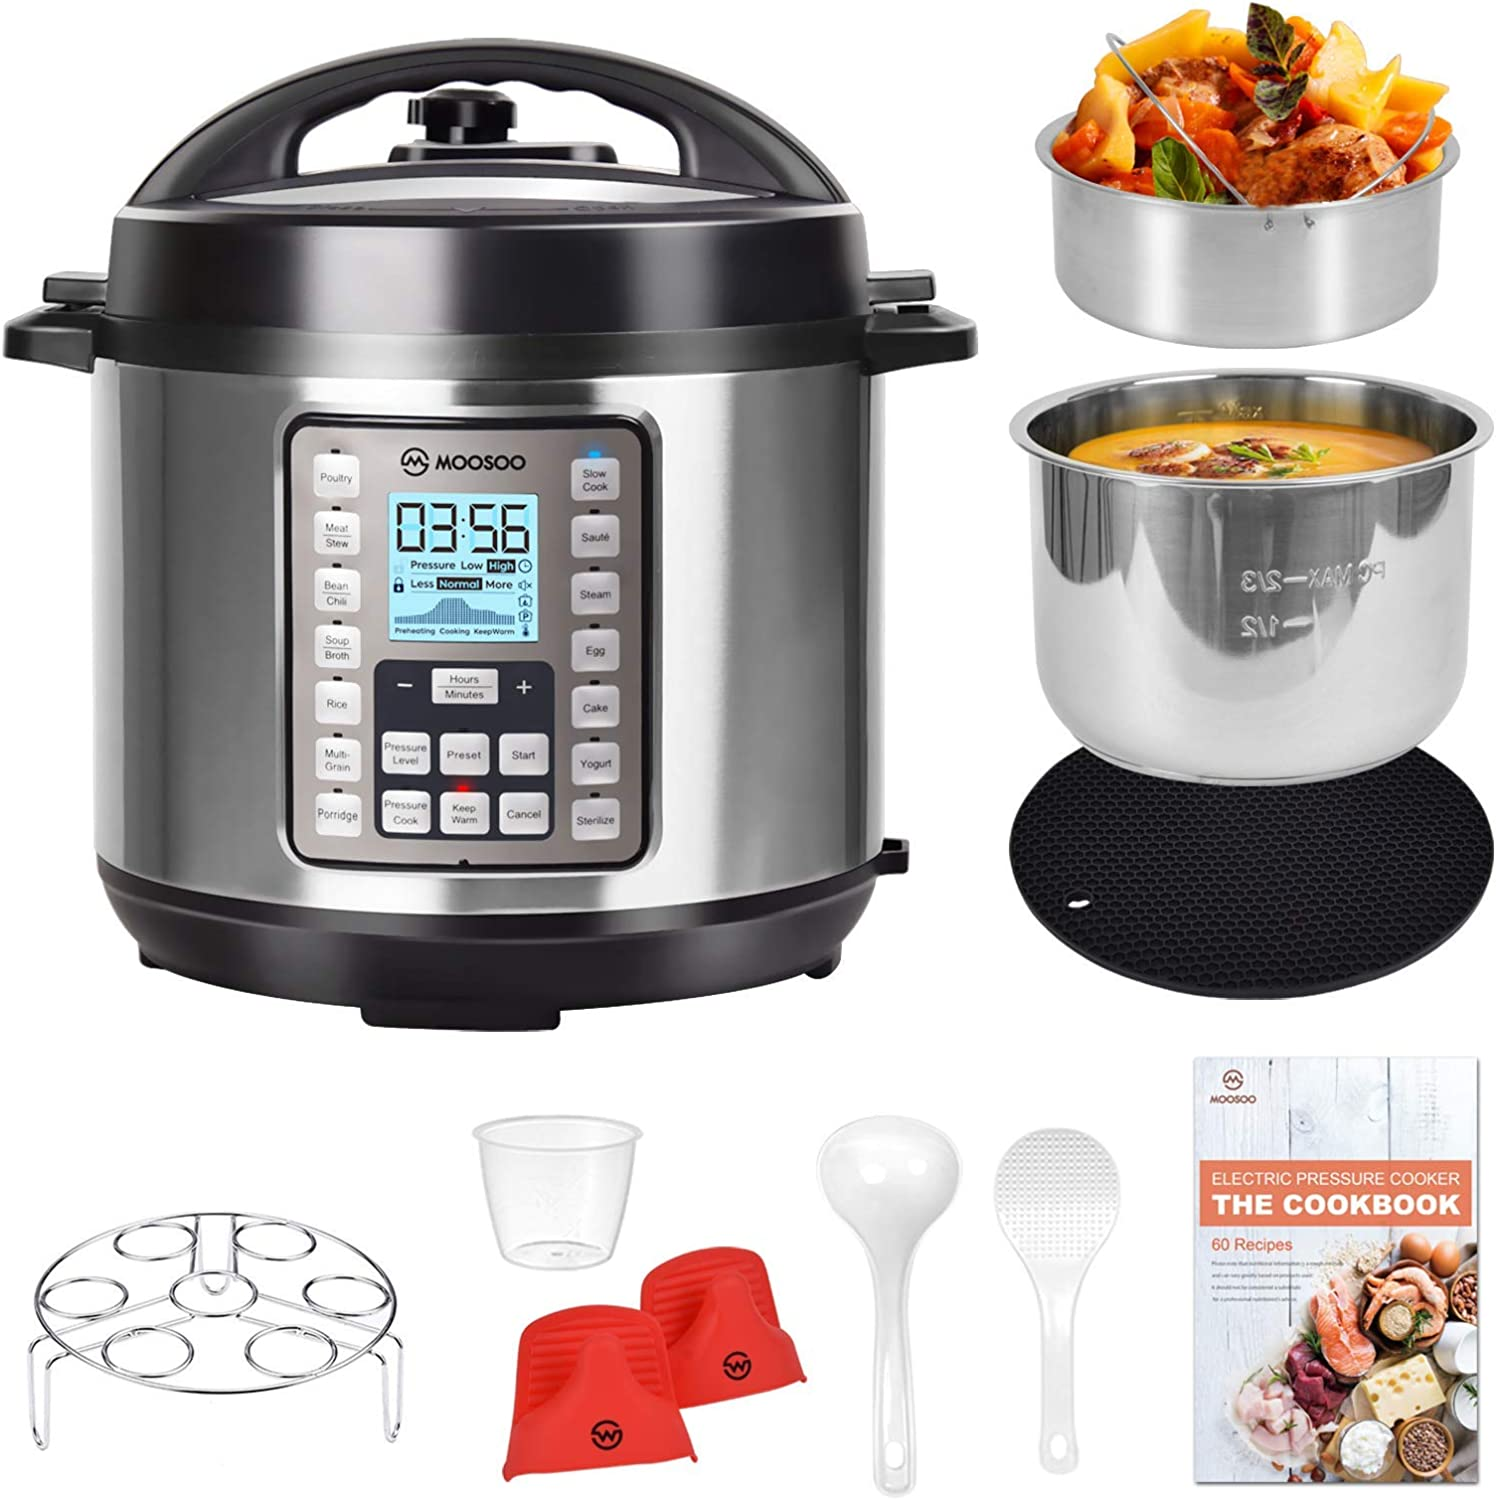 MOOSOO 9-in-1 Electric Pressure Cooker with LCD, 6QT Instant Programmable Pressure Pot, 15 One-Touch Programs with Deluxe Accessory Set (Renewed)